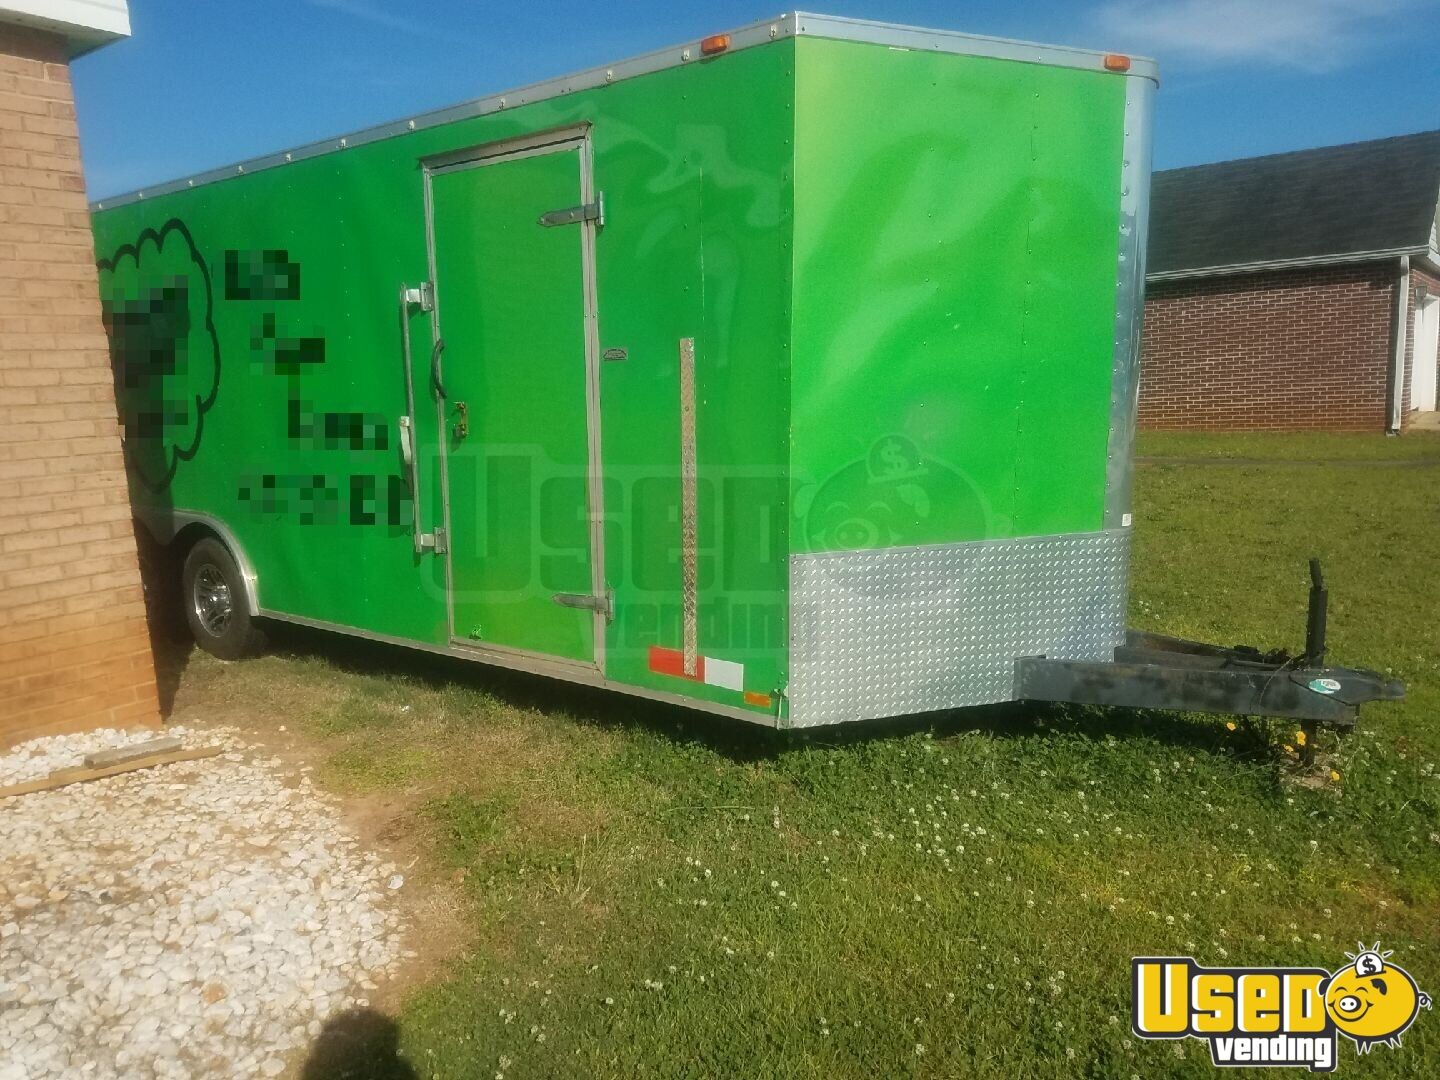 2004 24 Foot Mobile Cigar / Hookah Lounge Trailer Other Mobile Business Exterior Lighting Georgia for Sale - 6